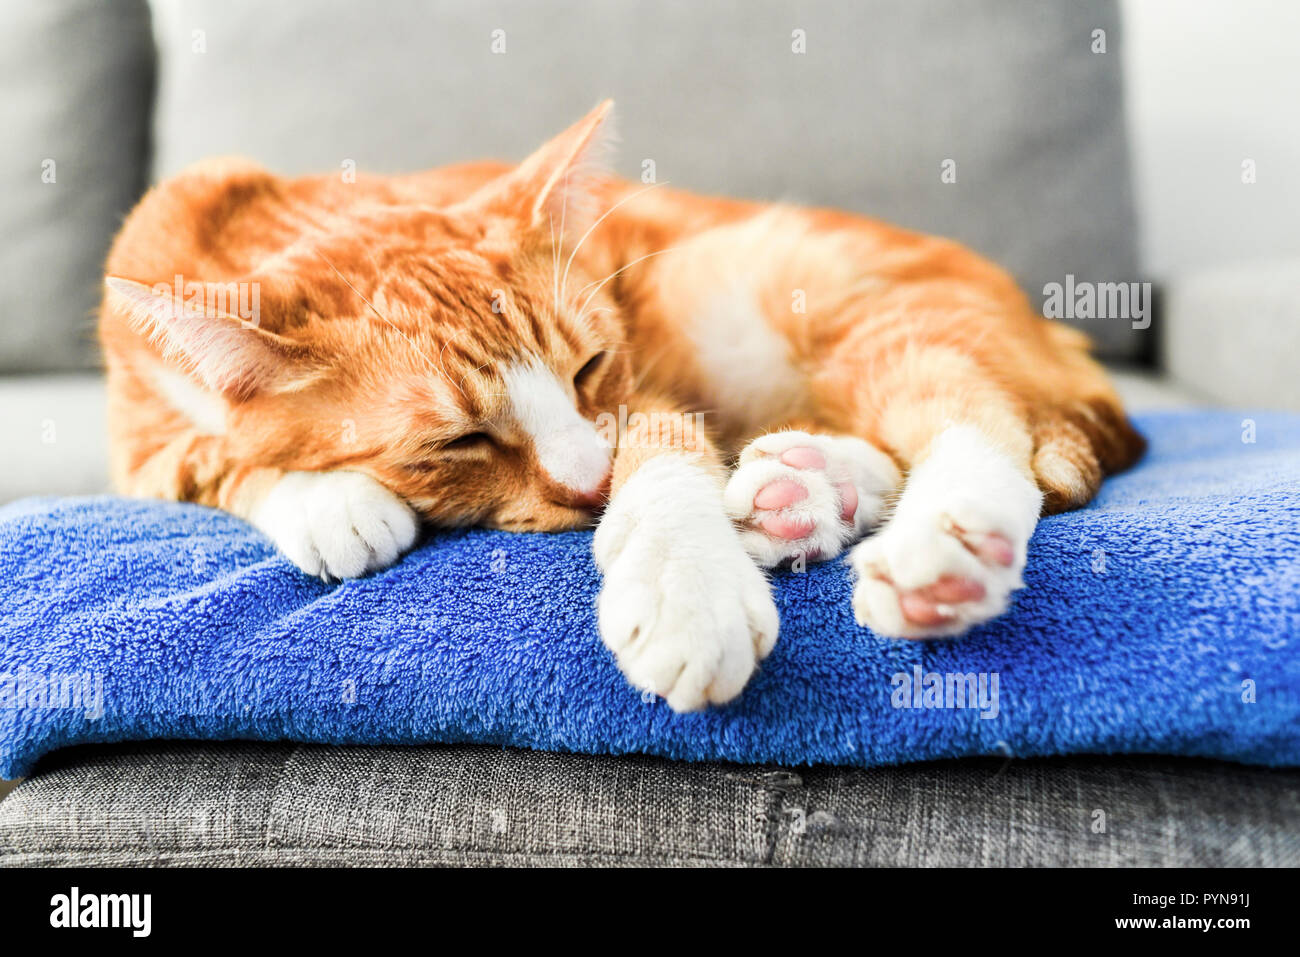 A beautiful red cat lying down and relaxing at home. - Stock Image